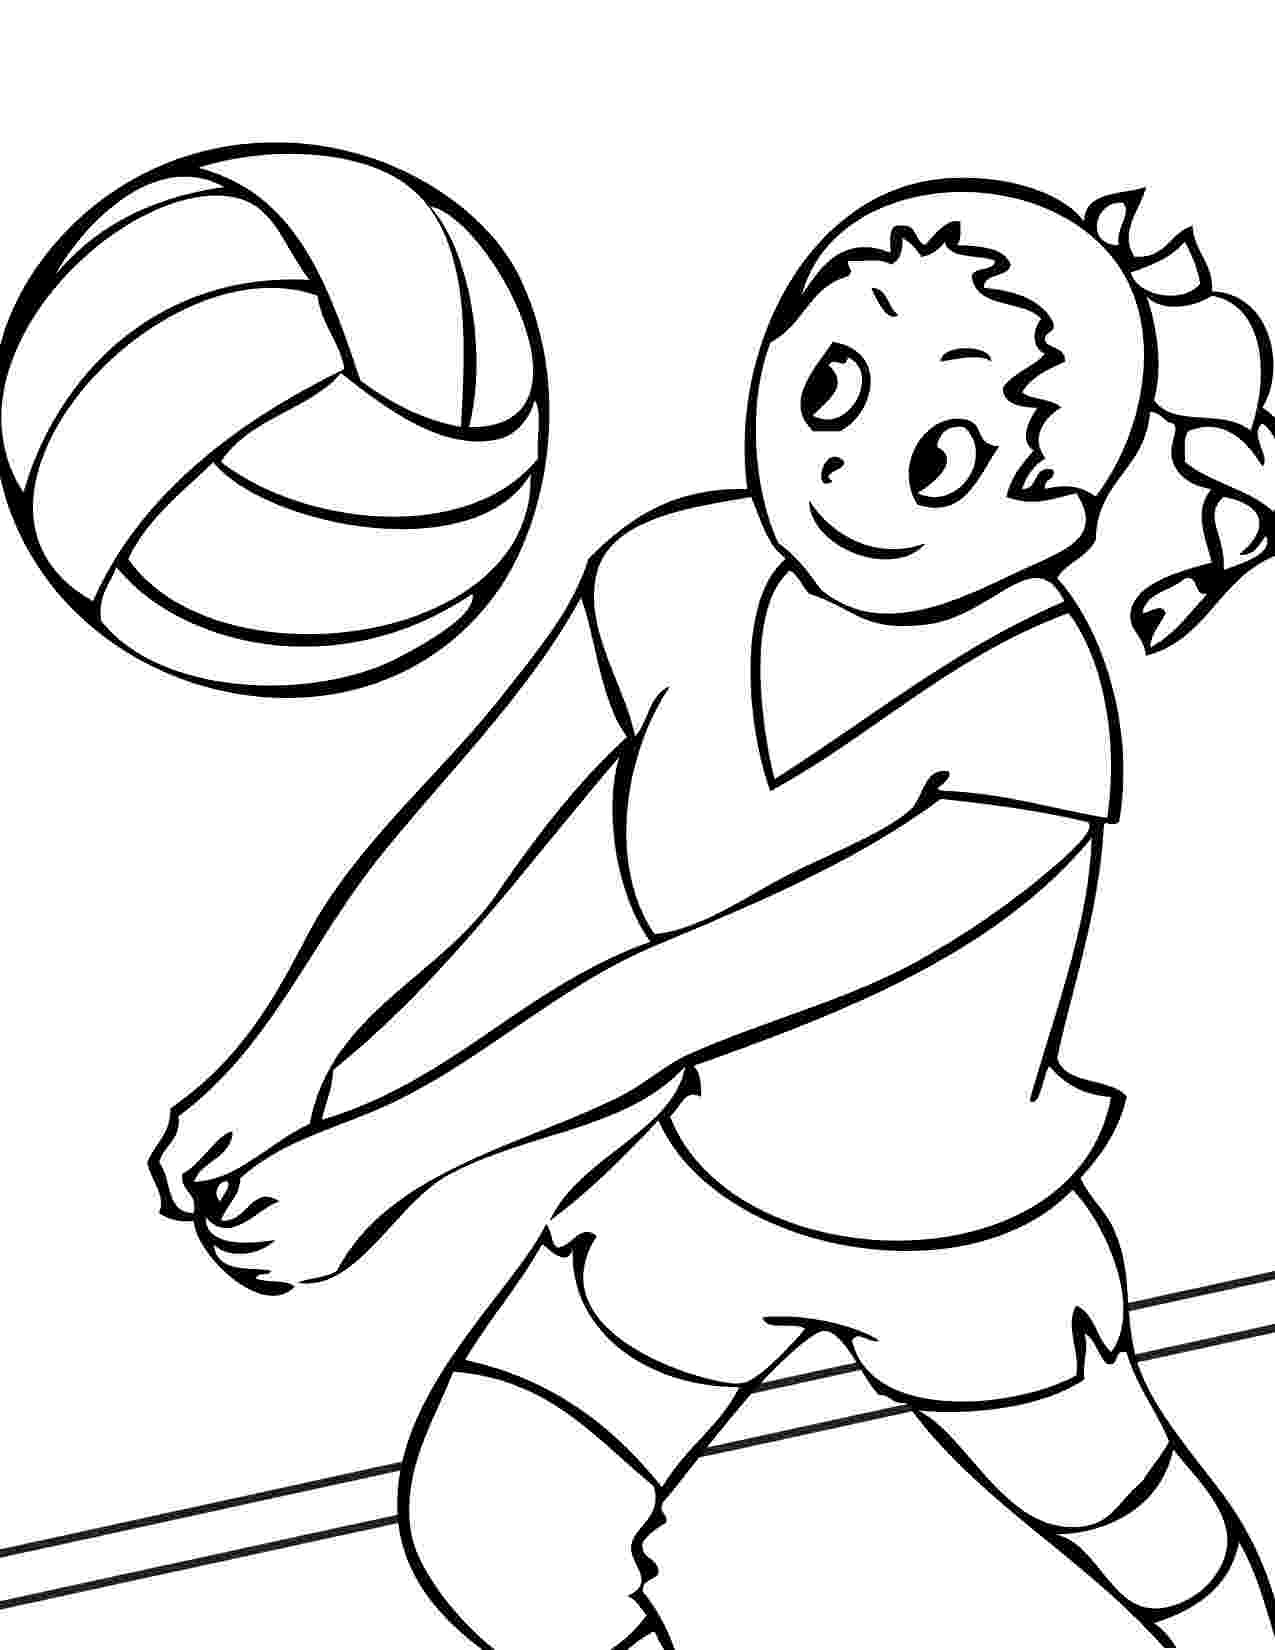 coloring pages volleyball printable volleyball coloring pages for kids cool2bkids pages coloring volleyball